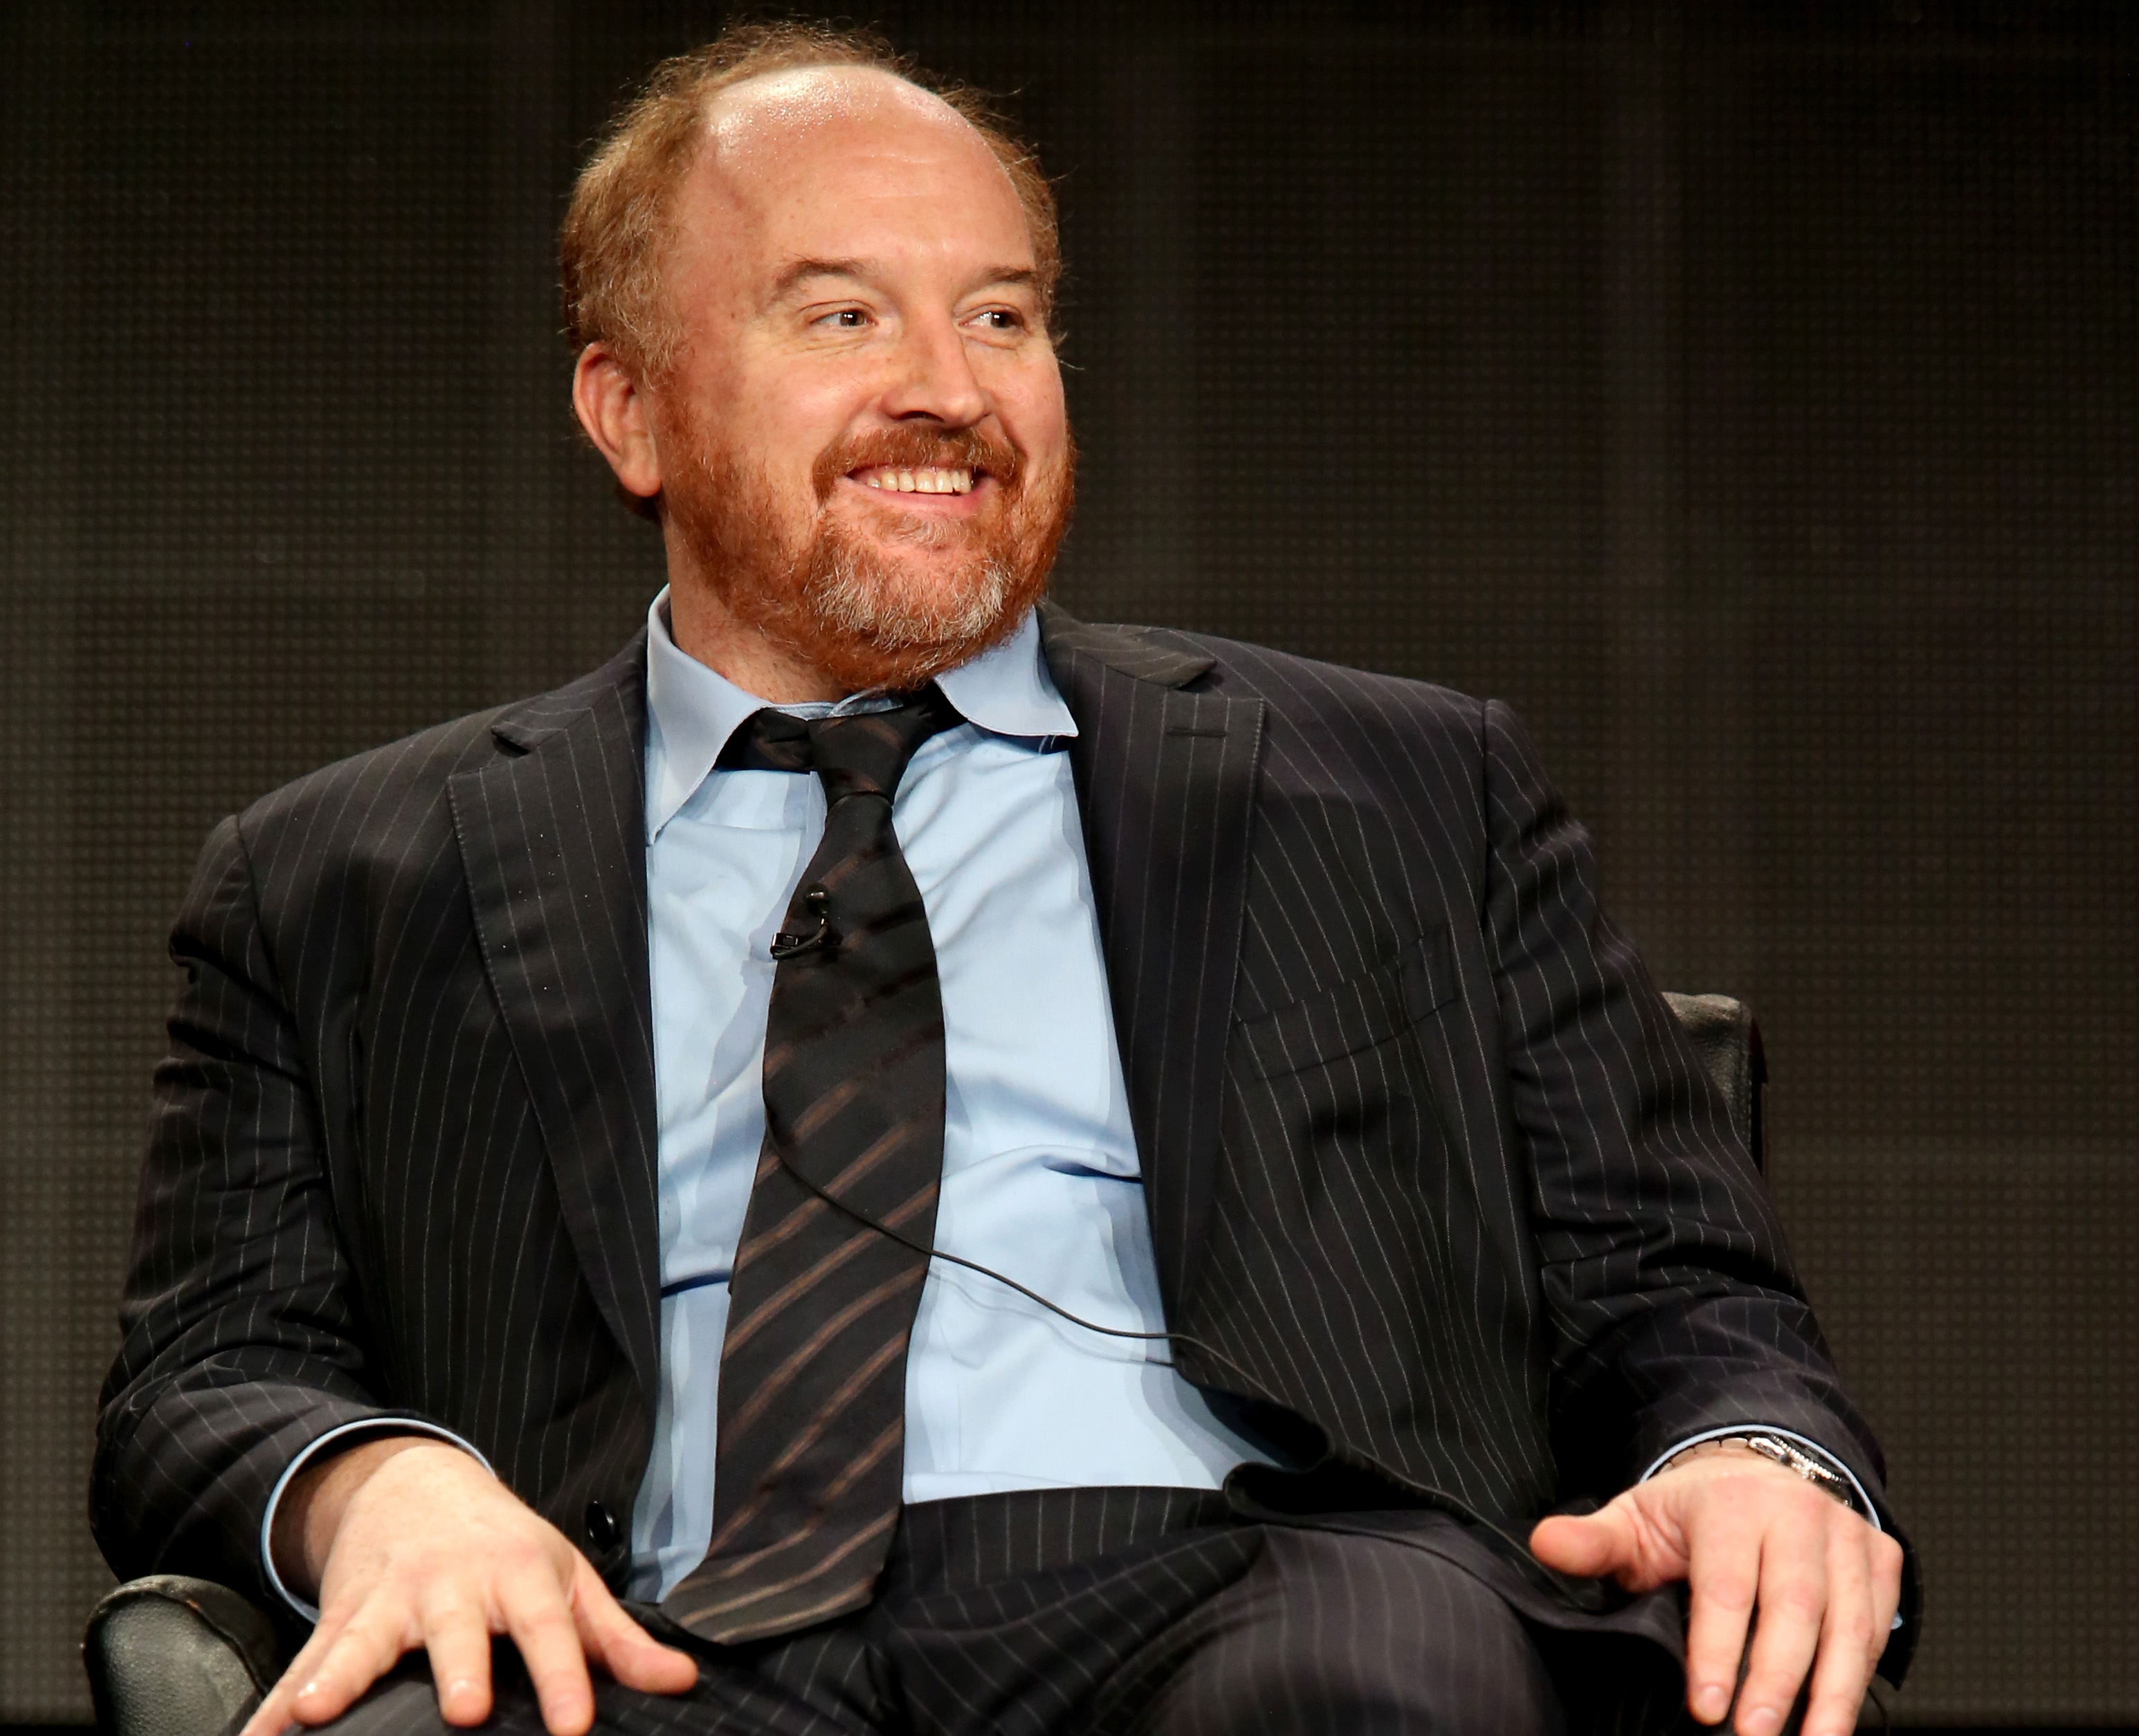 Actor Louis C.K. speaks during the Louie panel discussion of the Television Critics Association press tour on Jan. 18, 2015 in Pasadena, California.